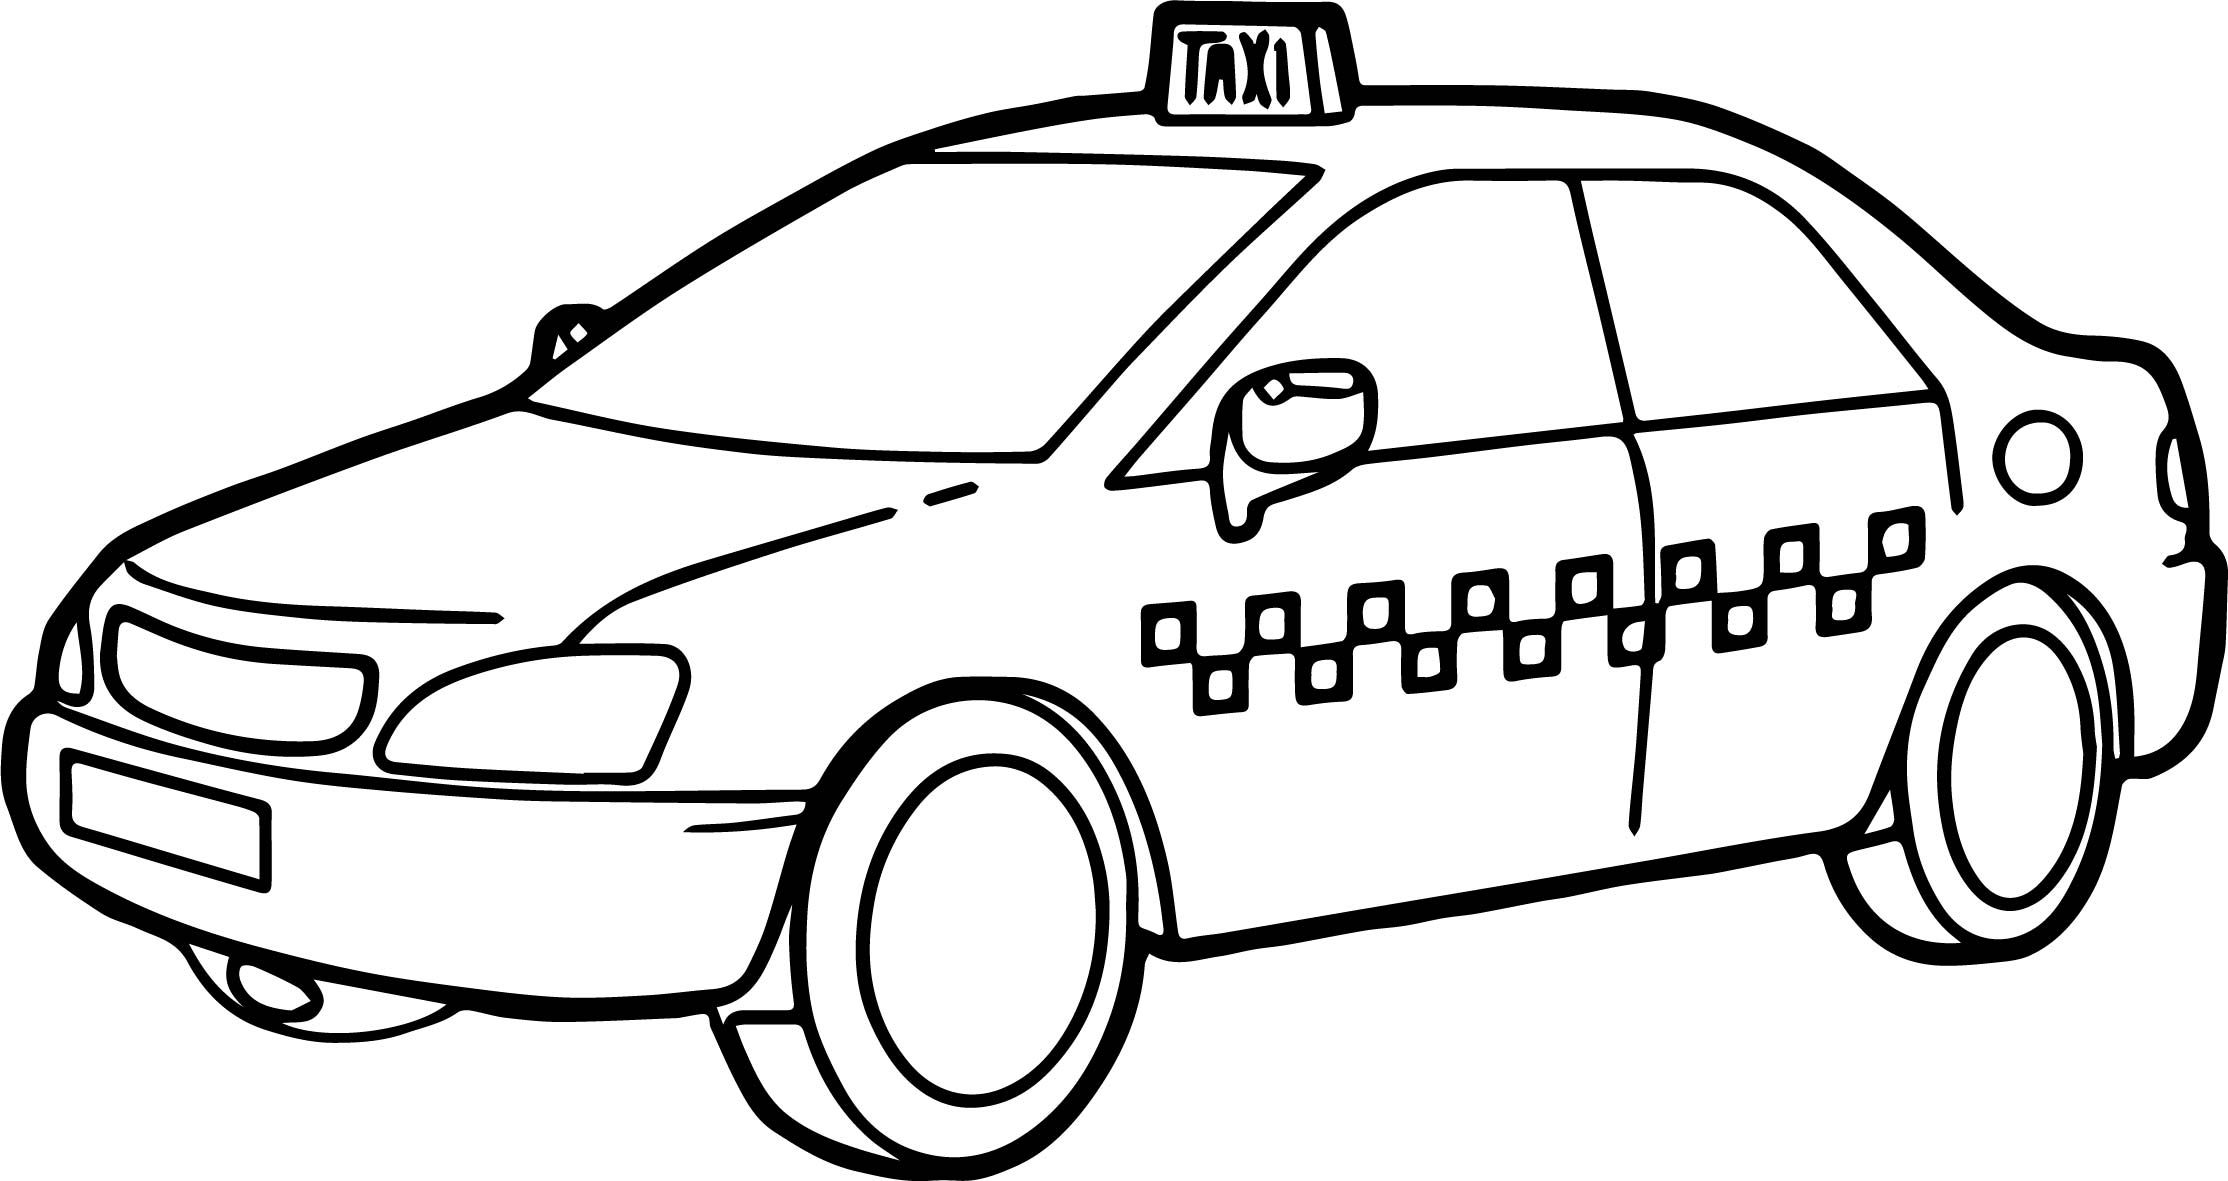 Taxi Driver Car Fast Coloring Page Fast Cars Car Coloring Pages